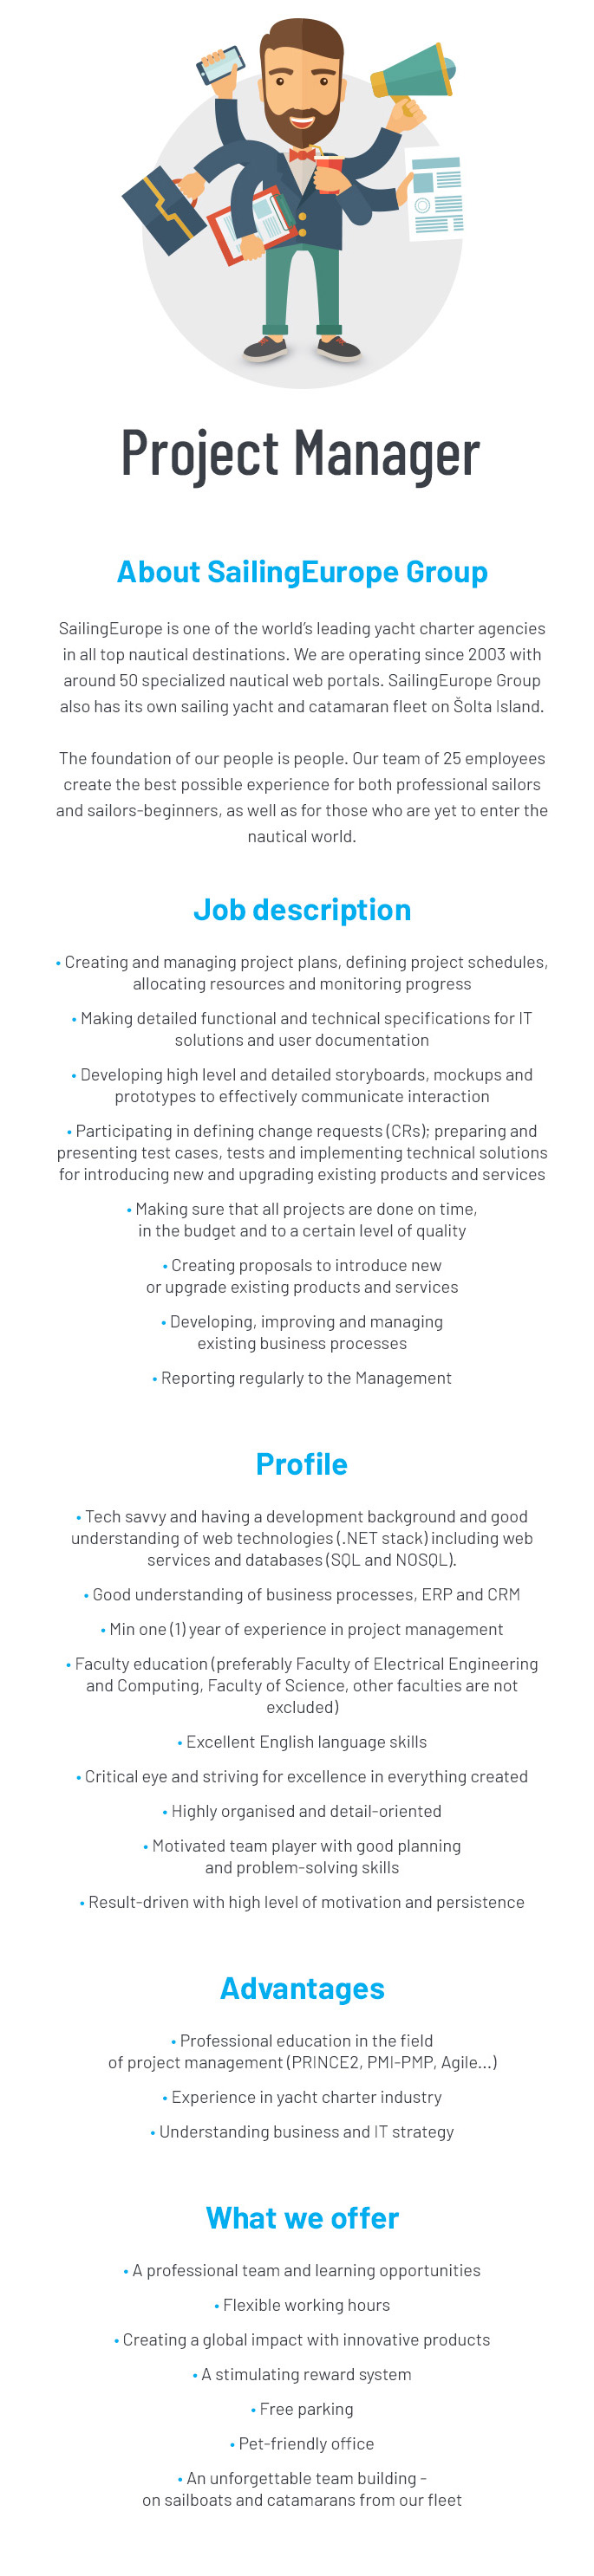 SailingEurope Jobs - Project Manager